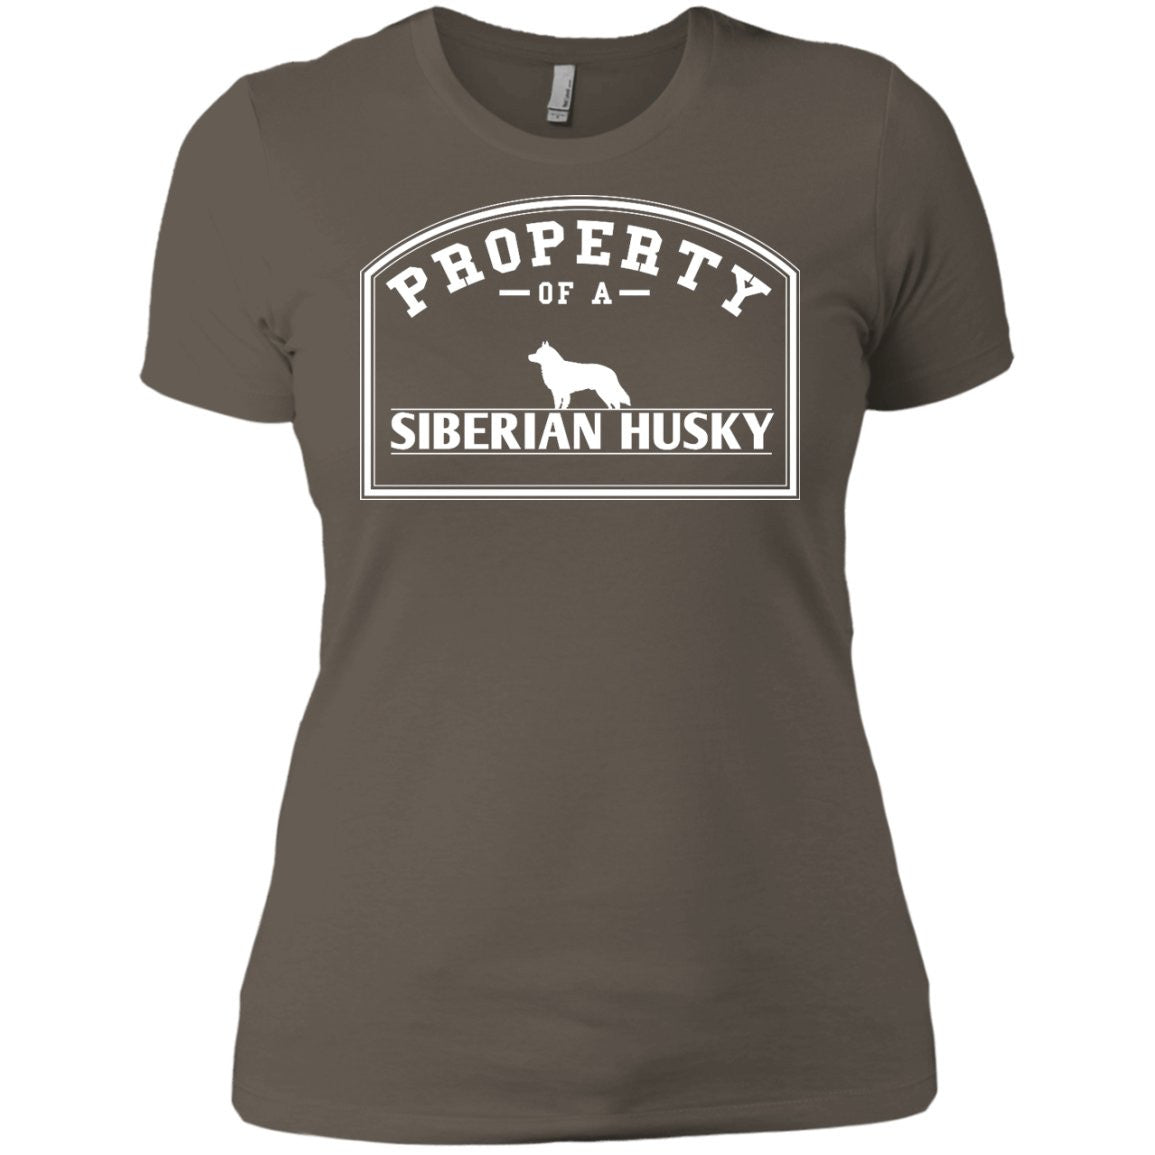 Siberian Husky - Property Of A Siberian Husky - Next Level Ladies' Boyfriend Tee